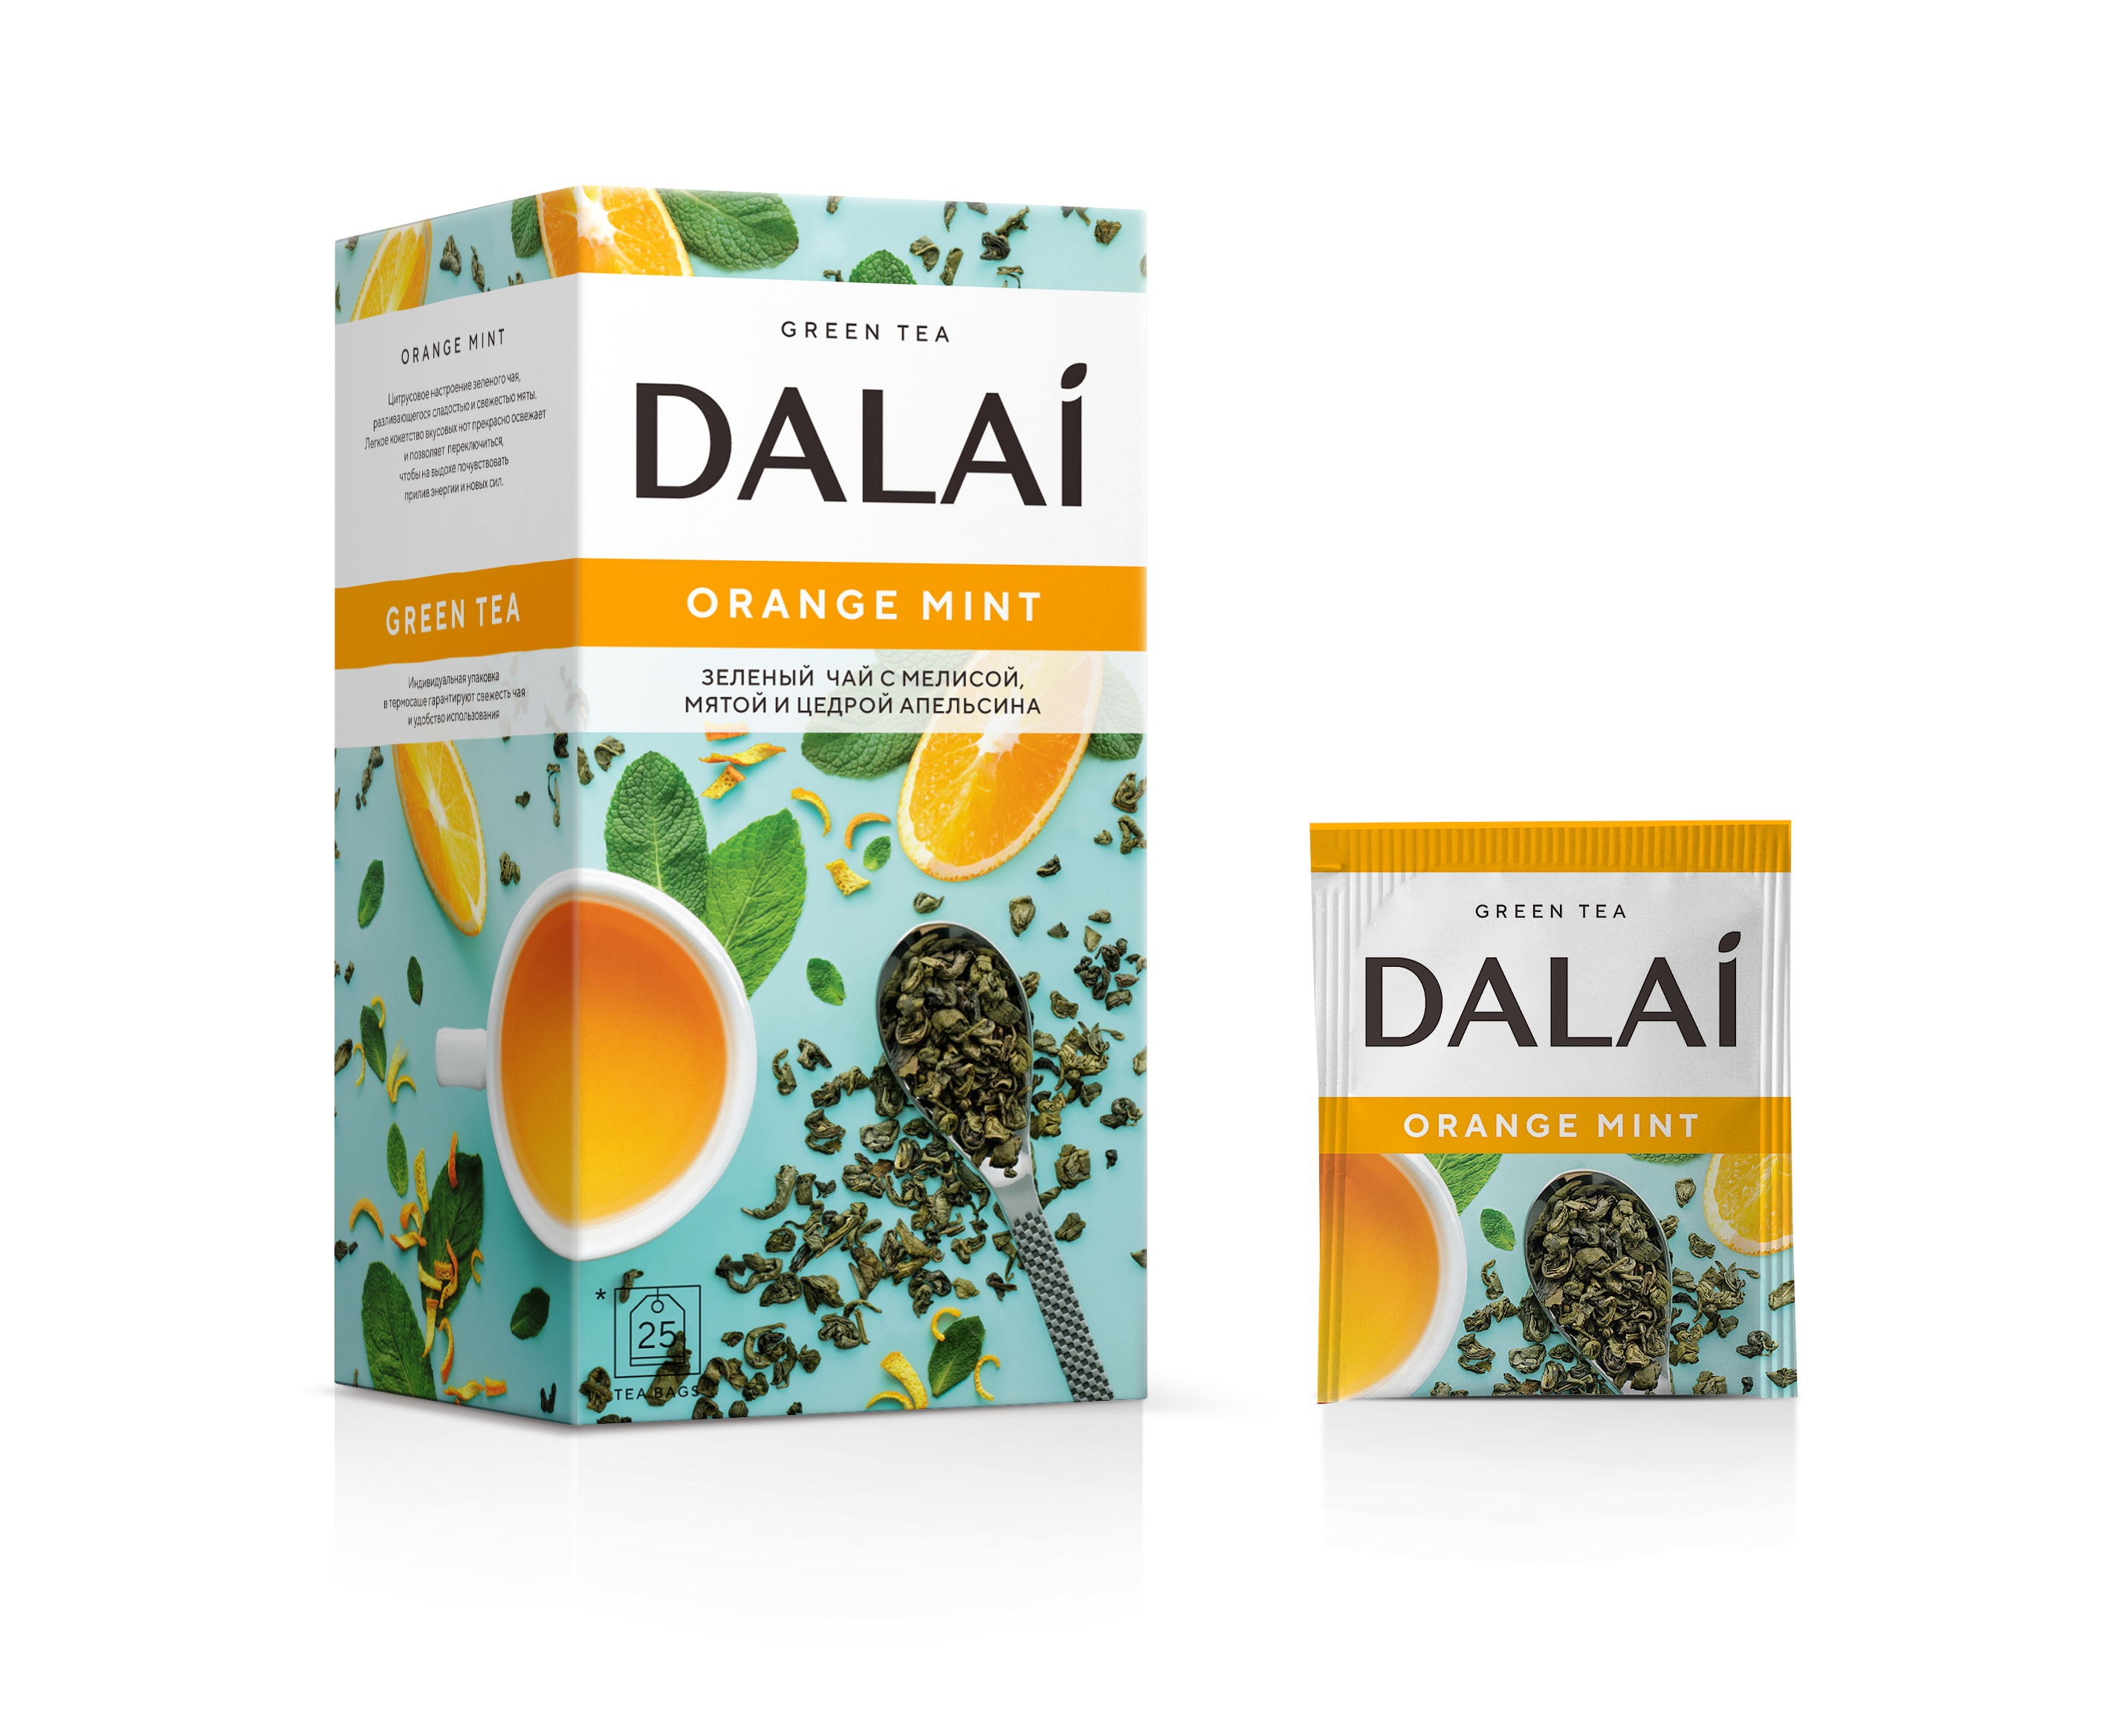 dalai orange mint